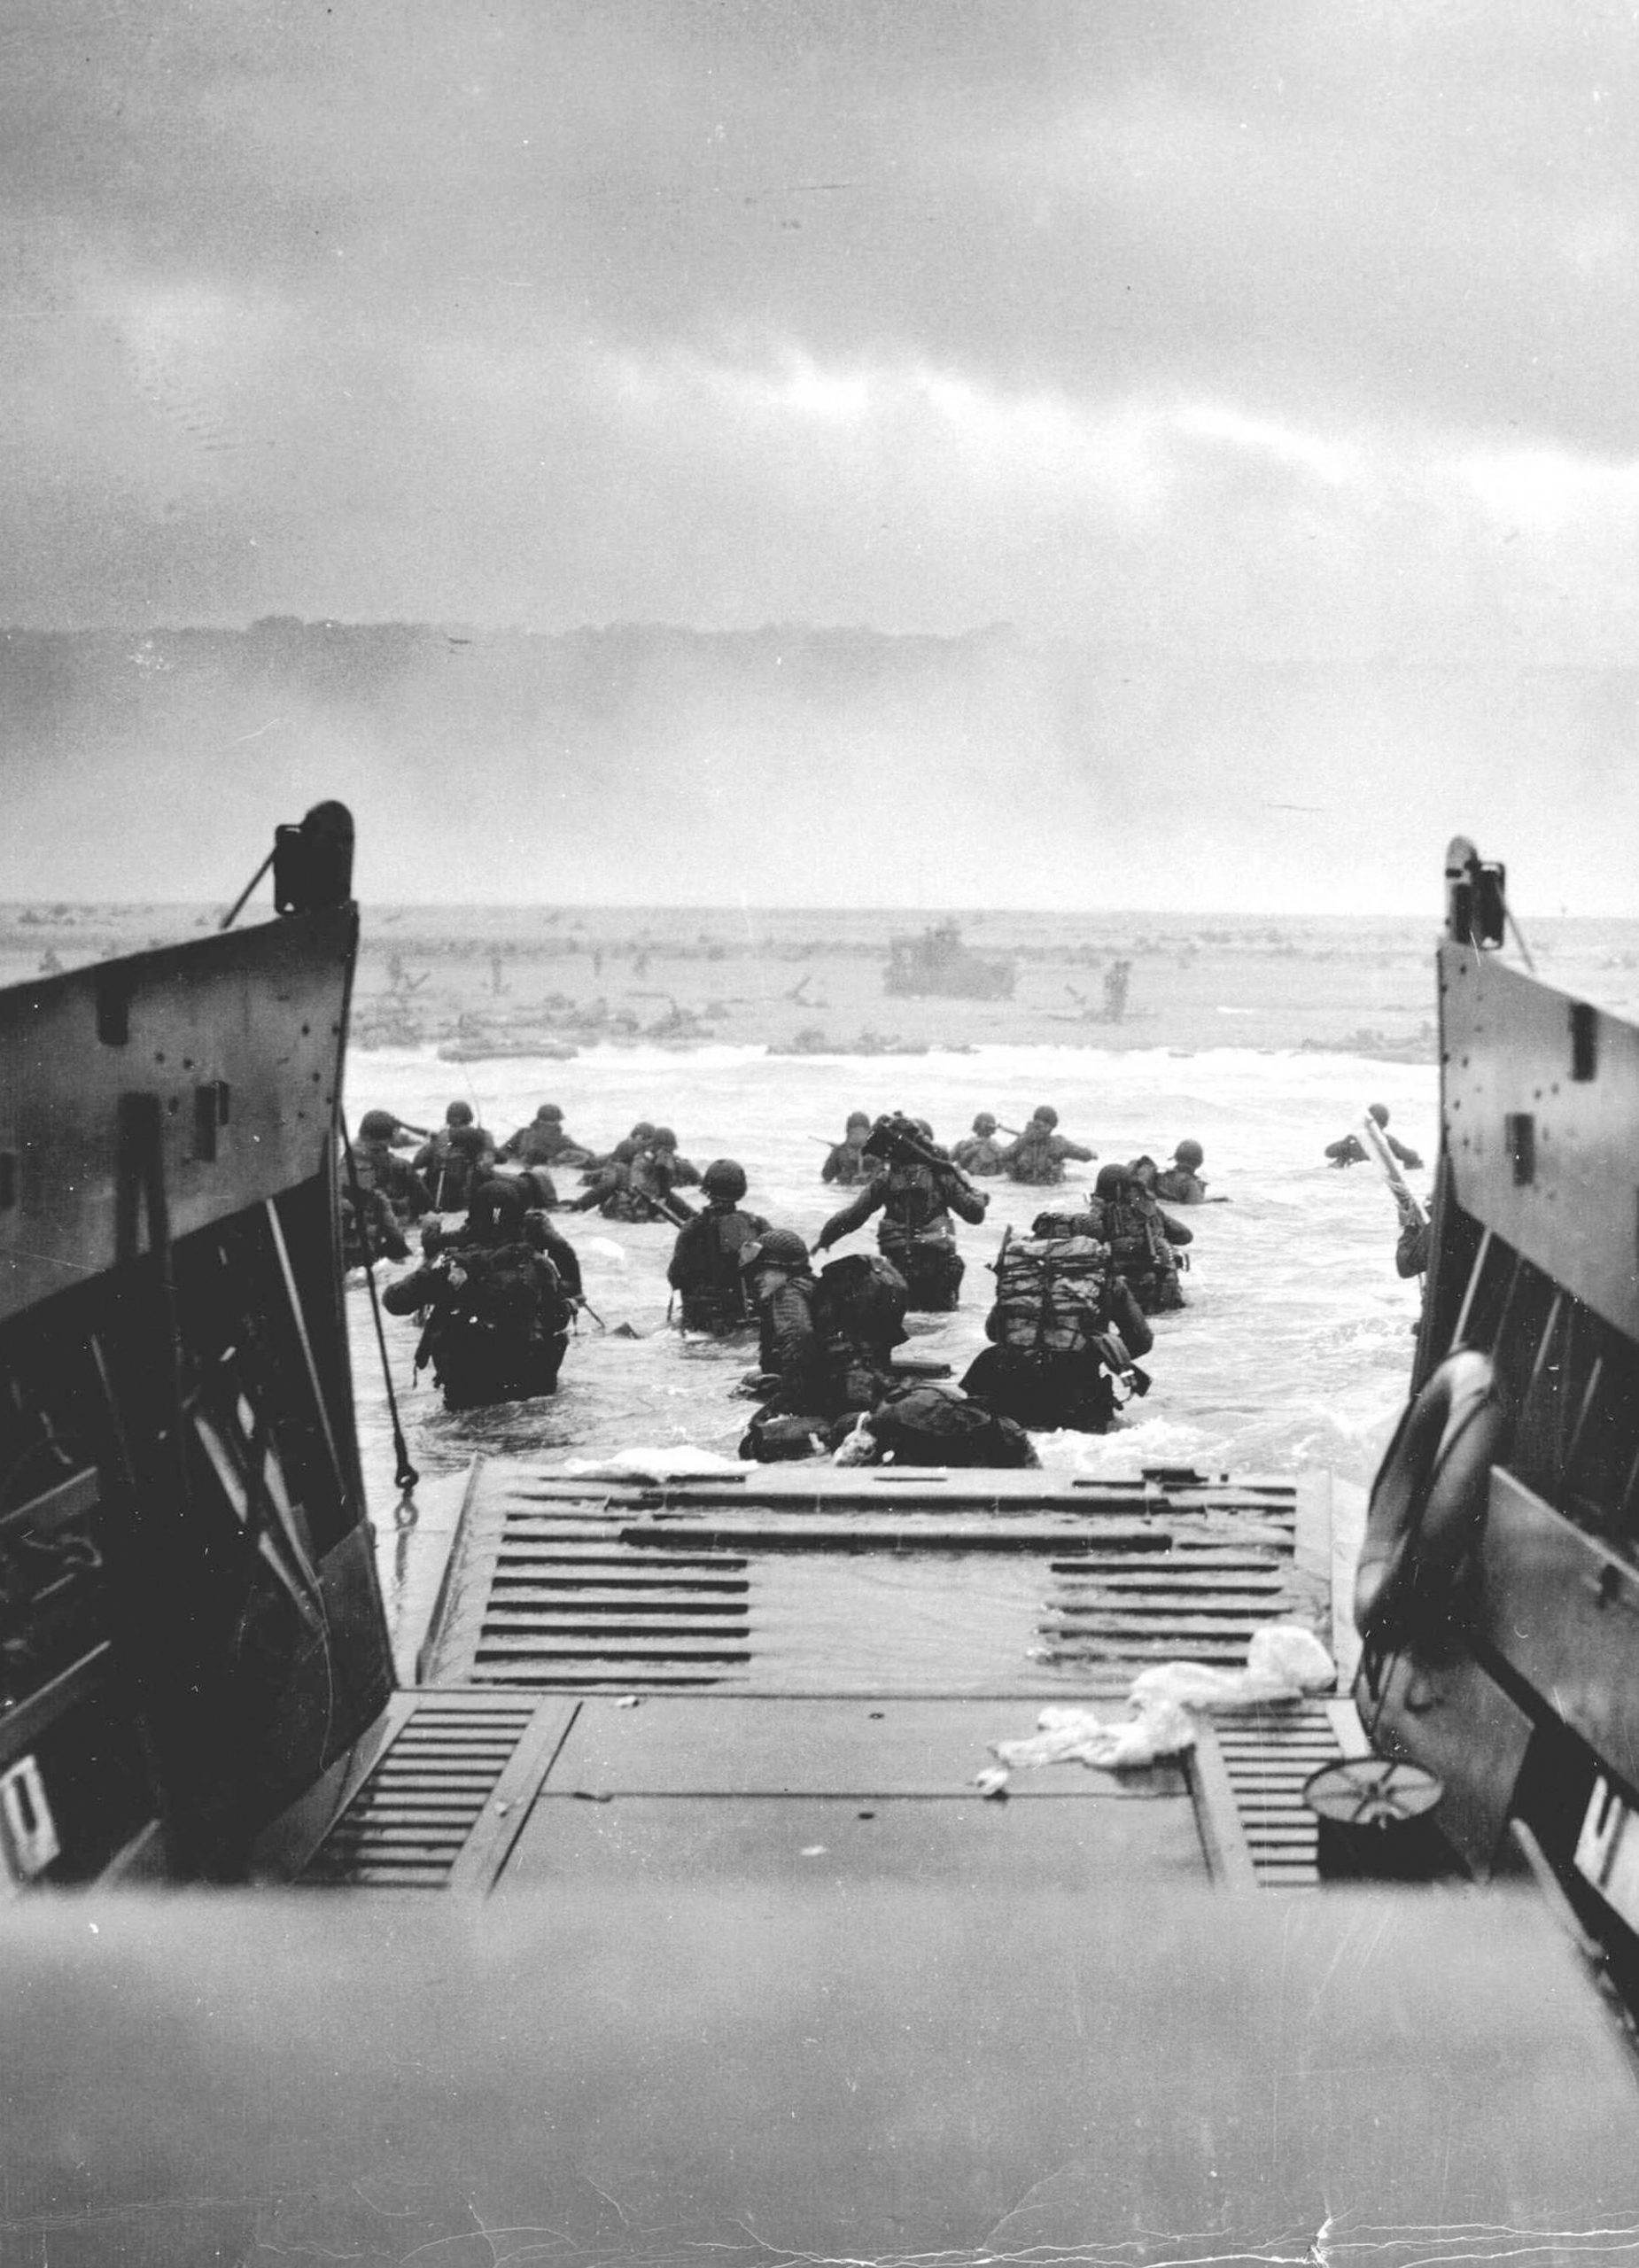 D-Day: The Invasion of Normandy - History